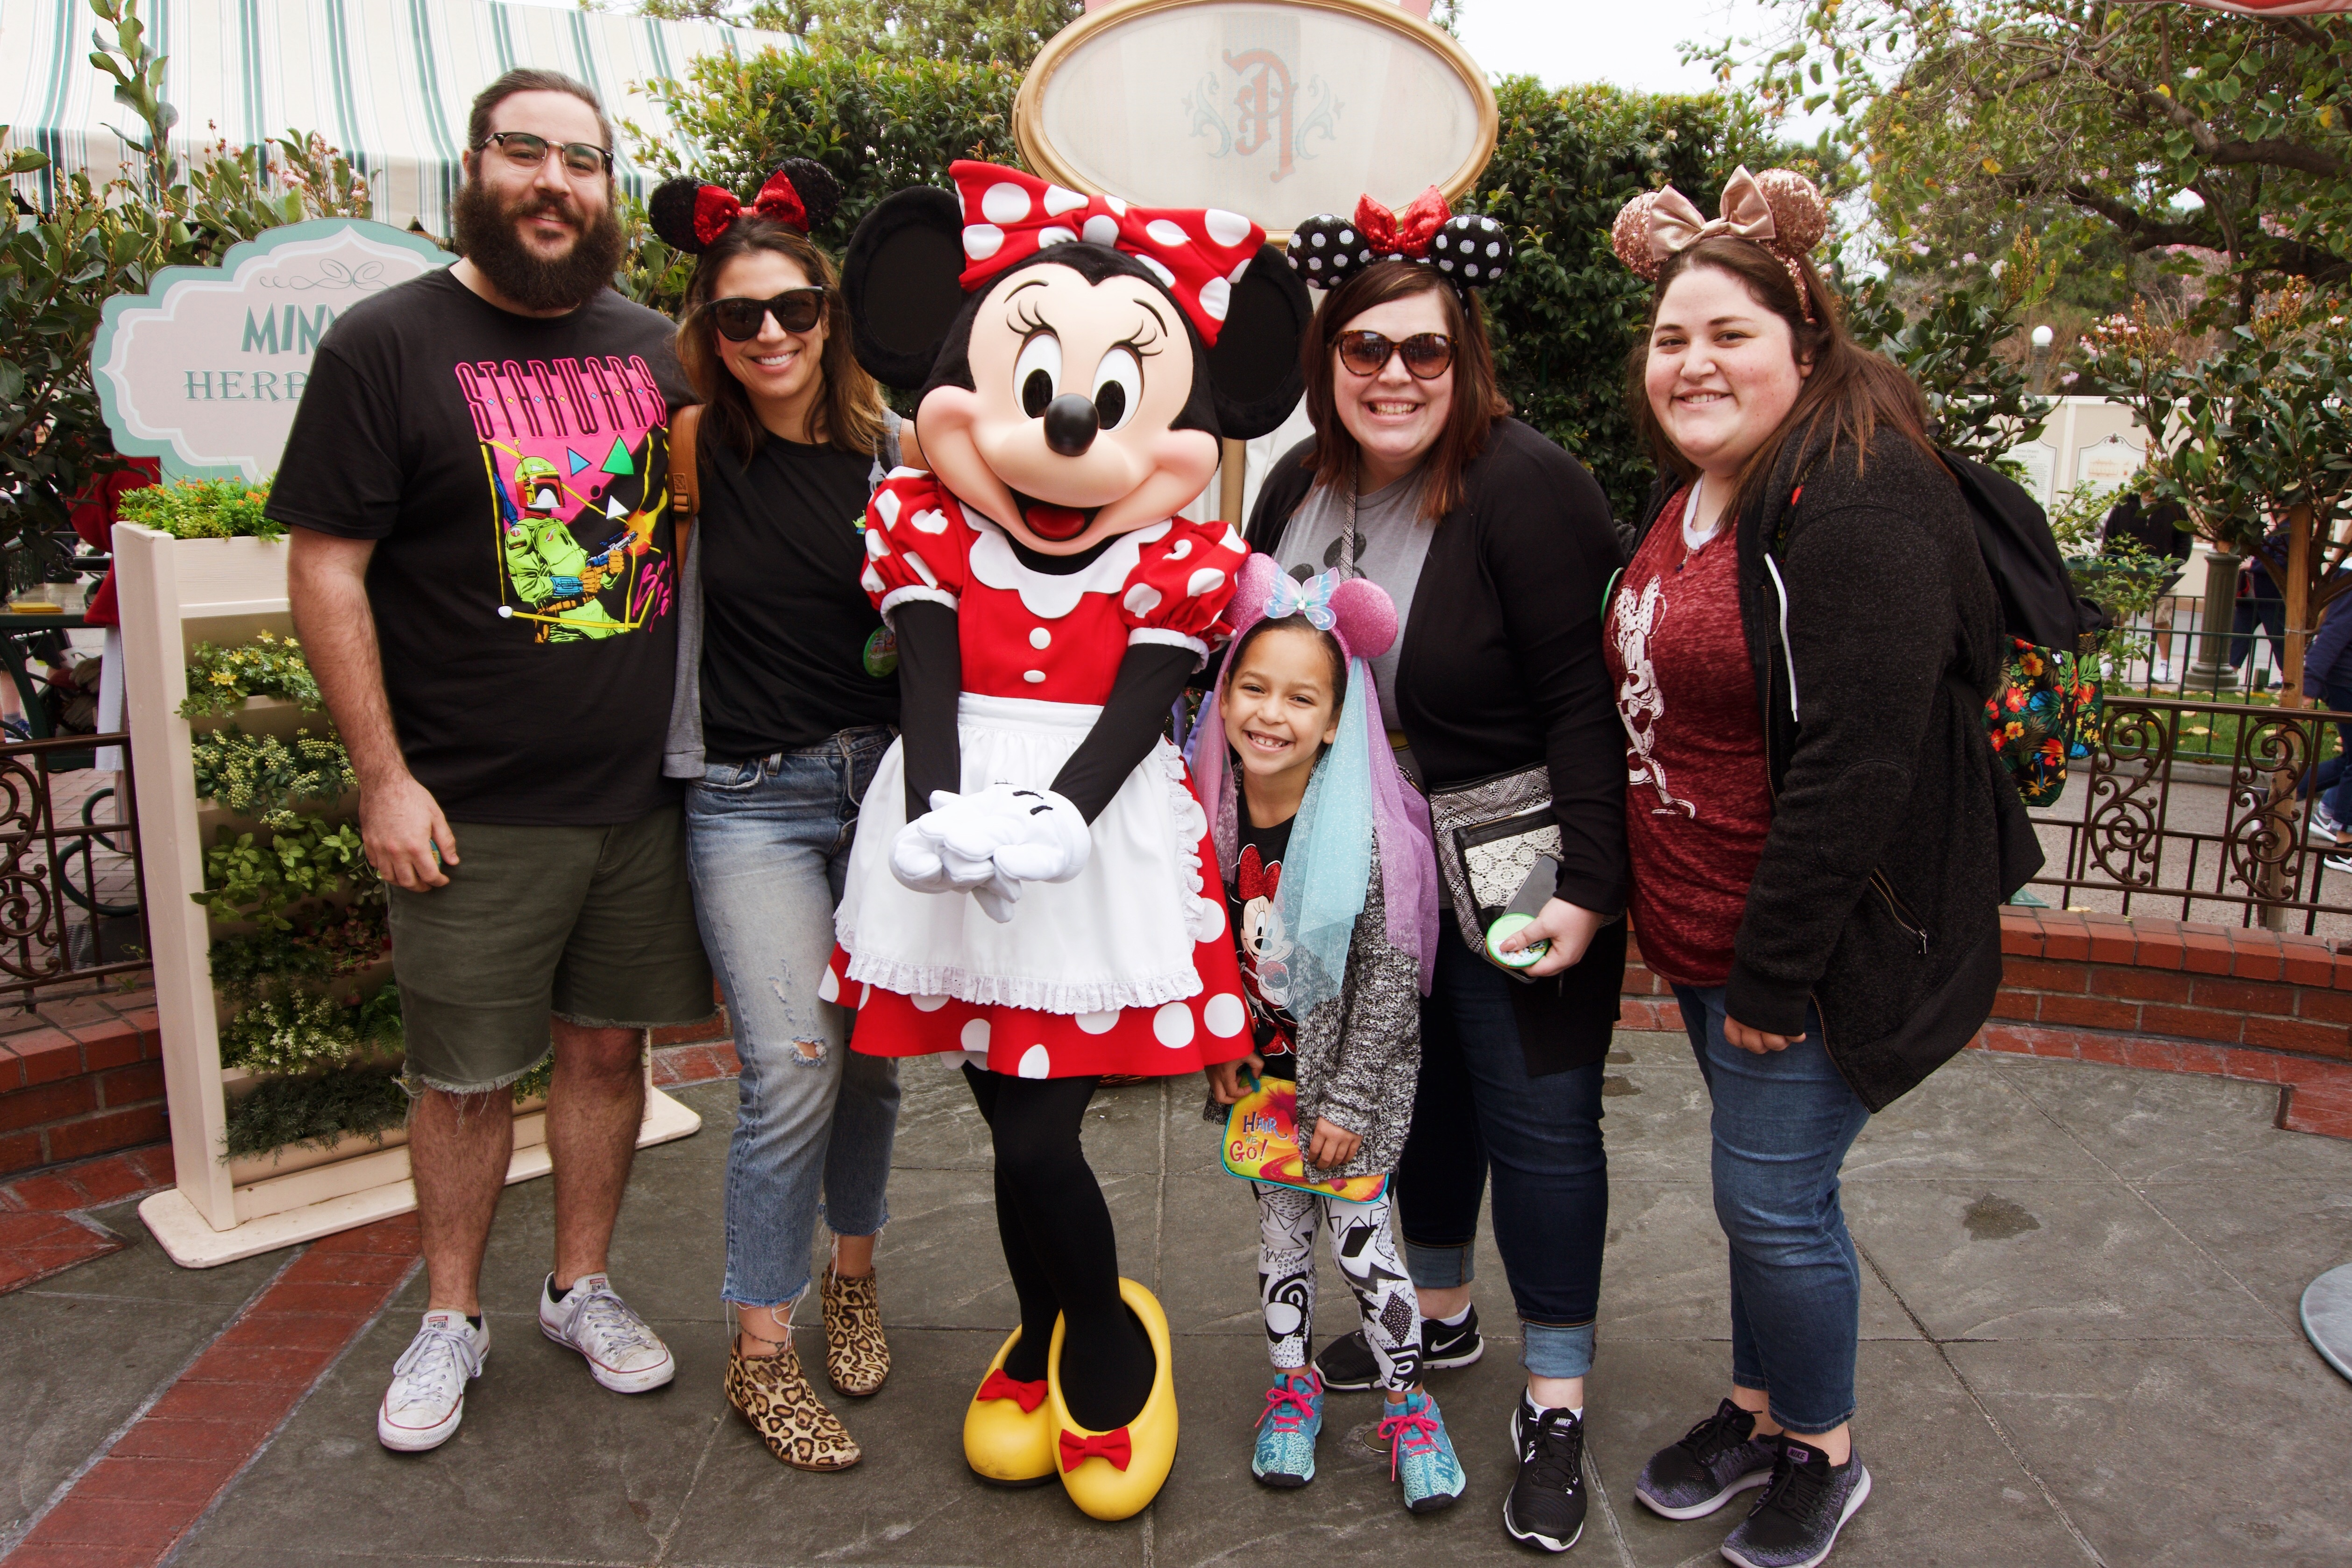 us and Minnie